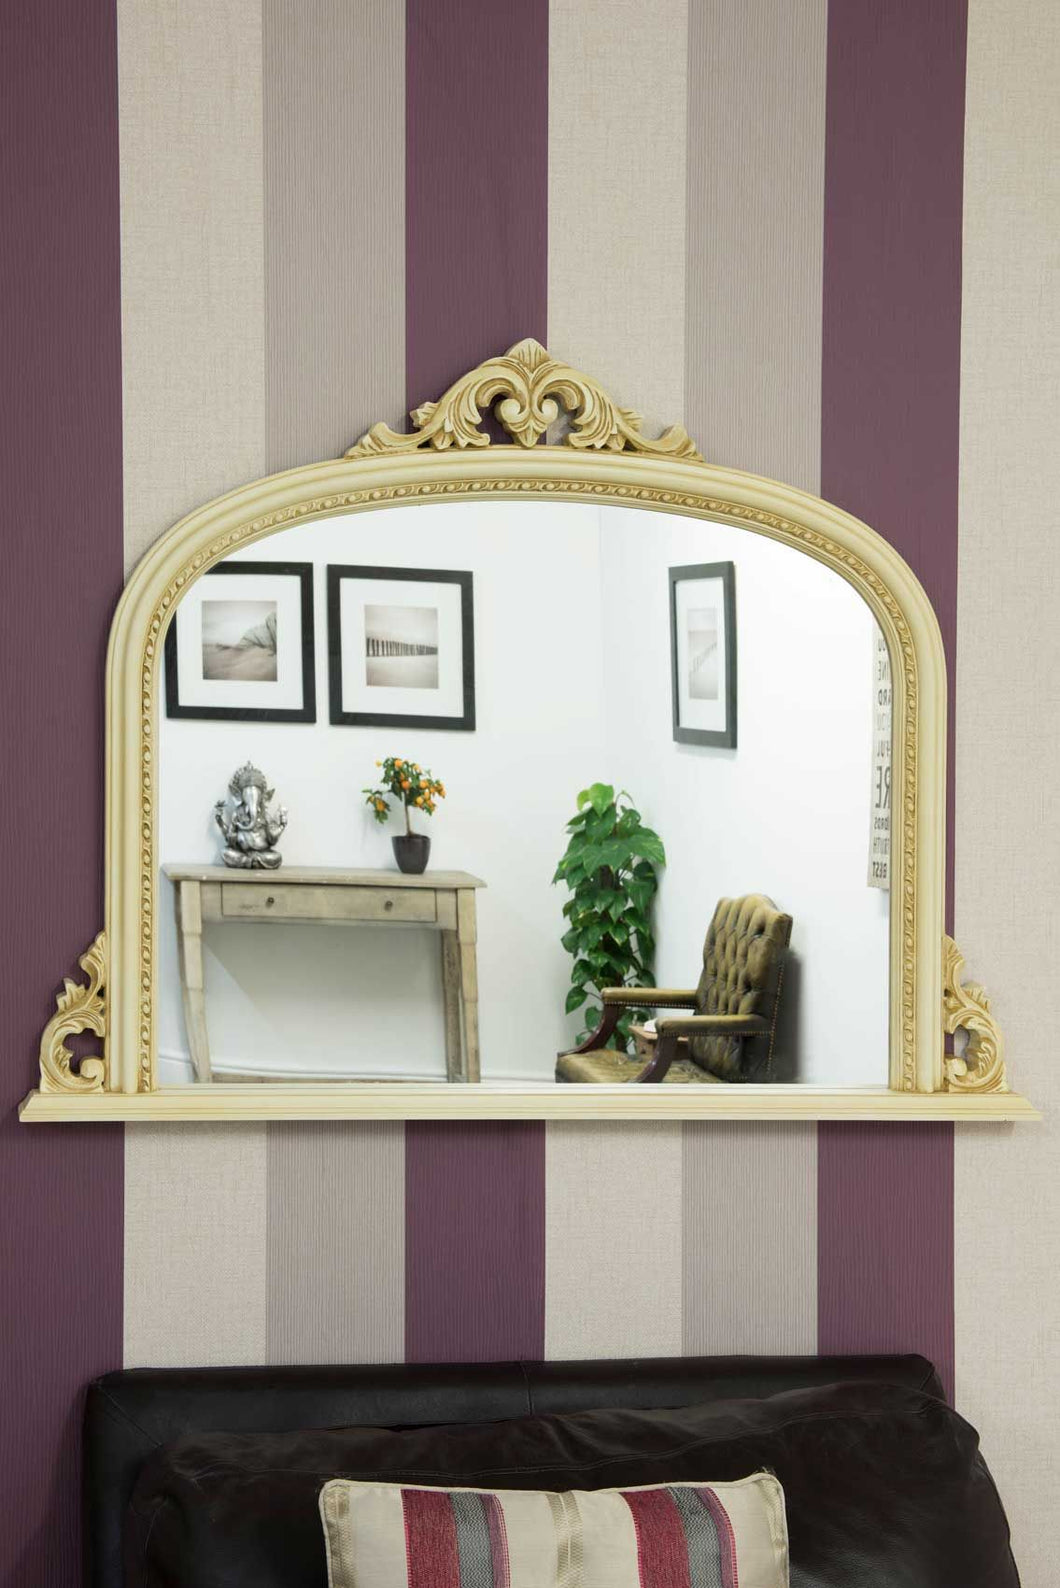 Large Ornate Shabby Chic Ivory/Cream Overmantle Mirror 4Ft2 X 3Ft 127cm X 91cm